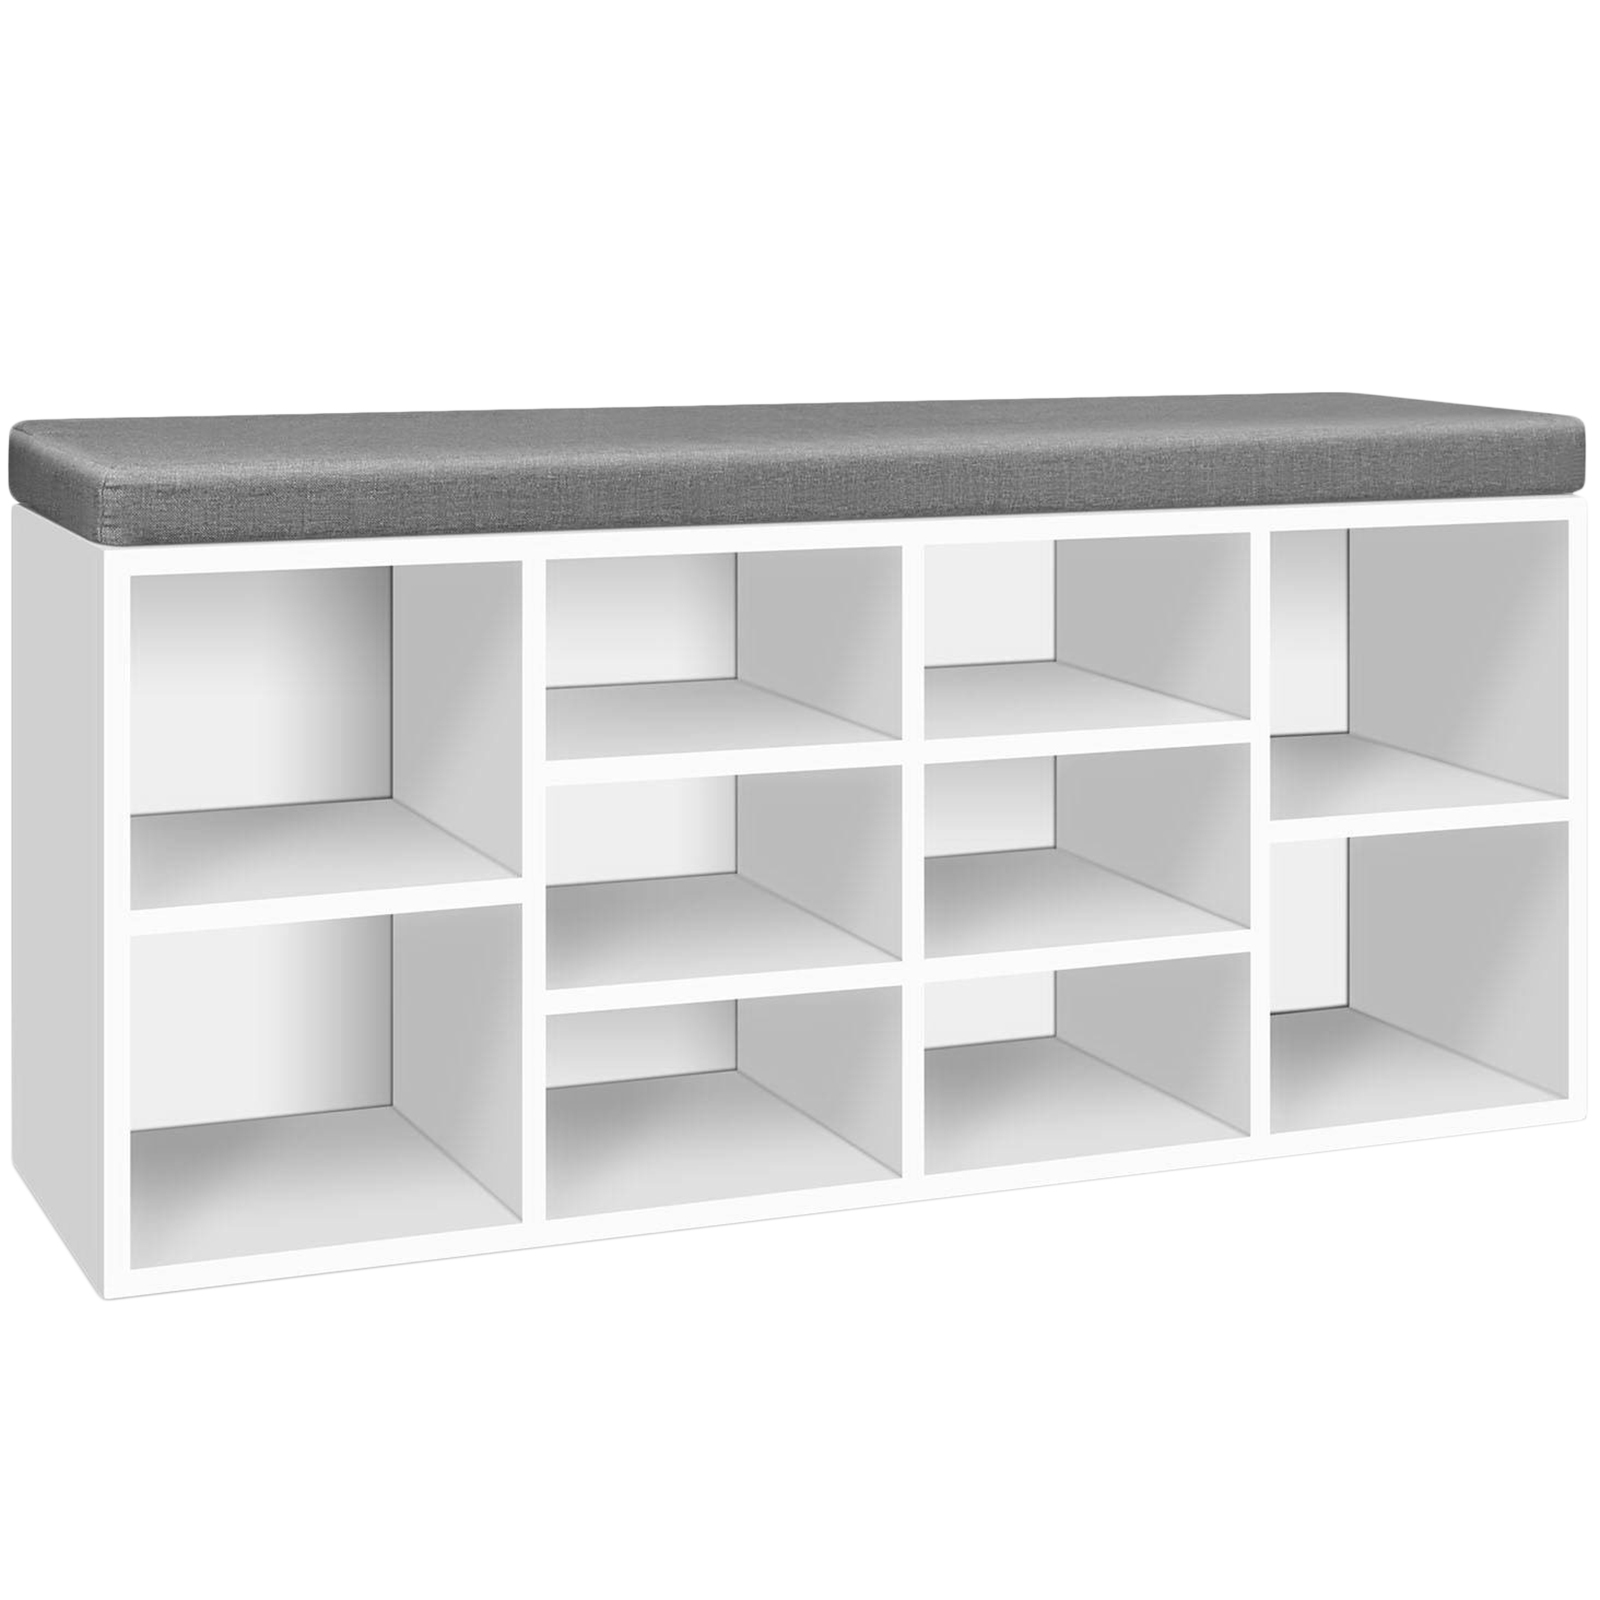 ottoman beauty foldable bench img storage alpine a cube ottomans light gray tufted benches seville lr classics